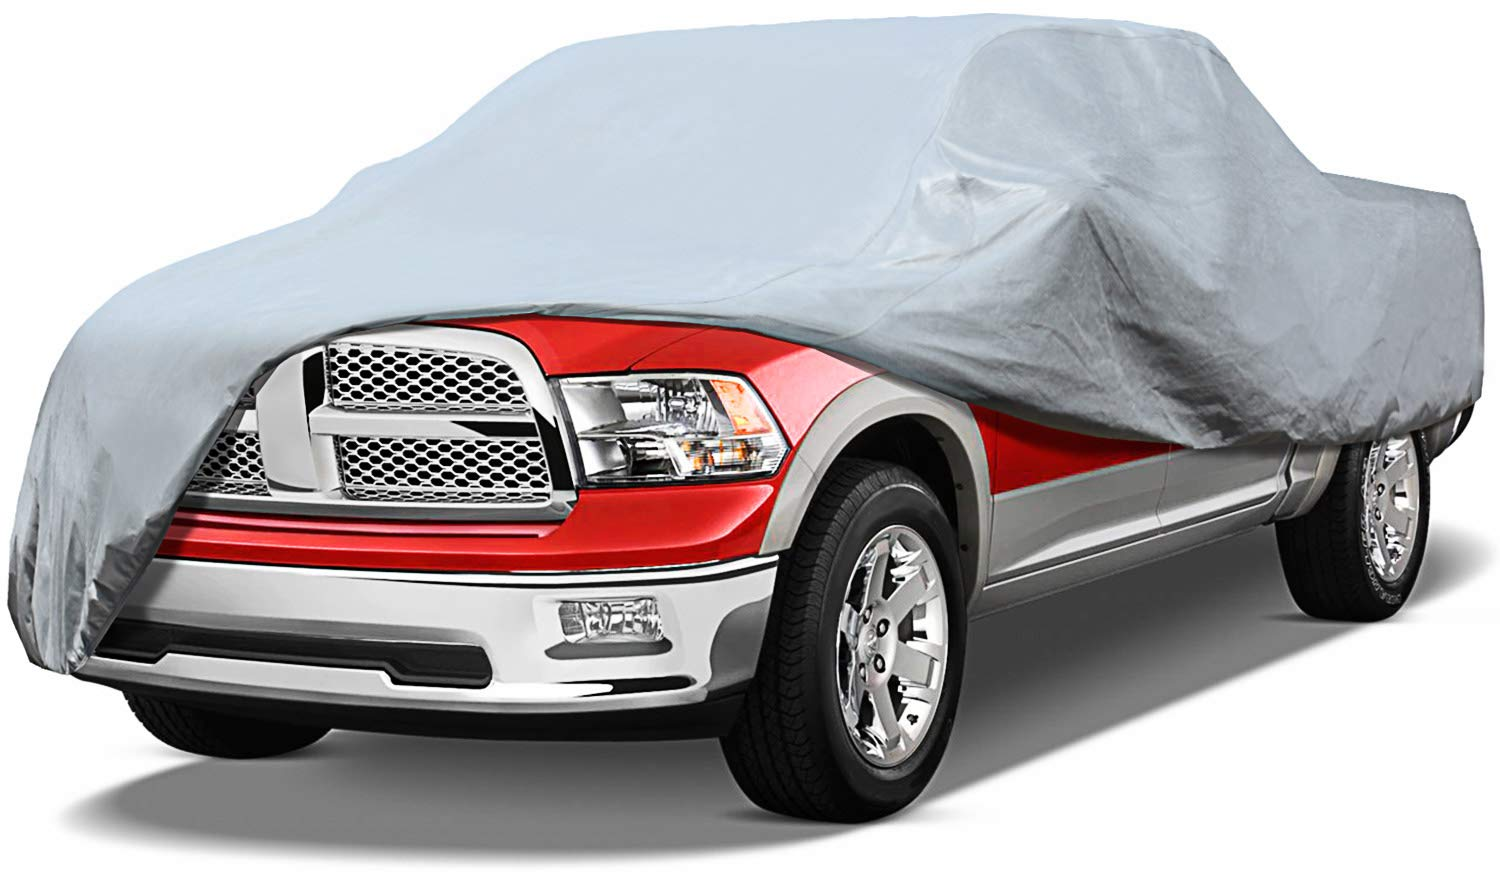 Leader Accessories Xtreme Guard 5 Layers Pick up Truck Car Cover Waterproof Breathable Outdoor Indoor (Pick up Truck up to 20'8'')